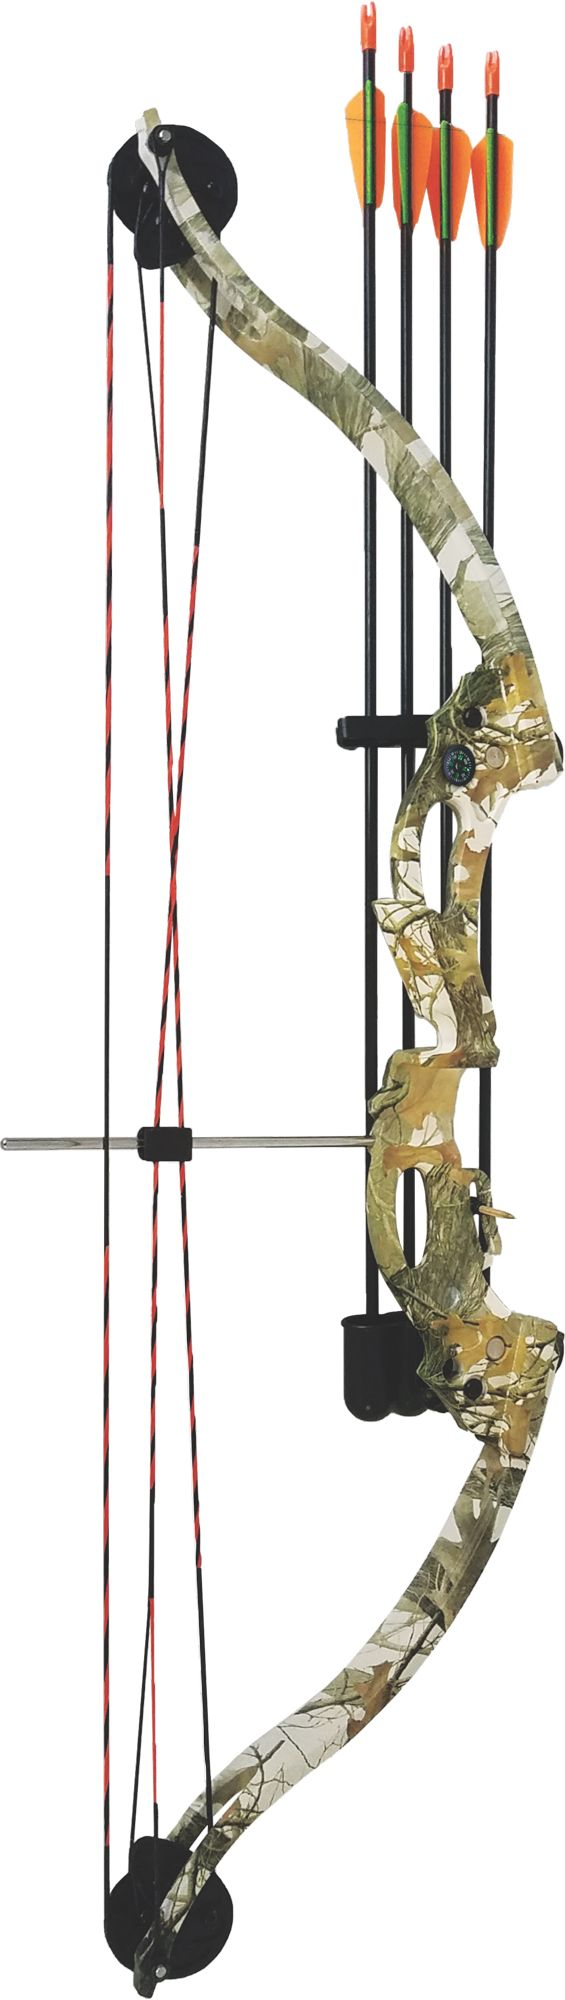 BOLT Crossbows The Pursuit Youth Compound Bow Package, Size: Small thumbnail